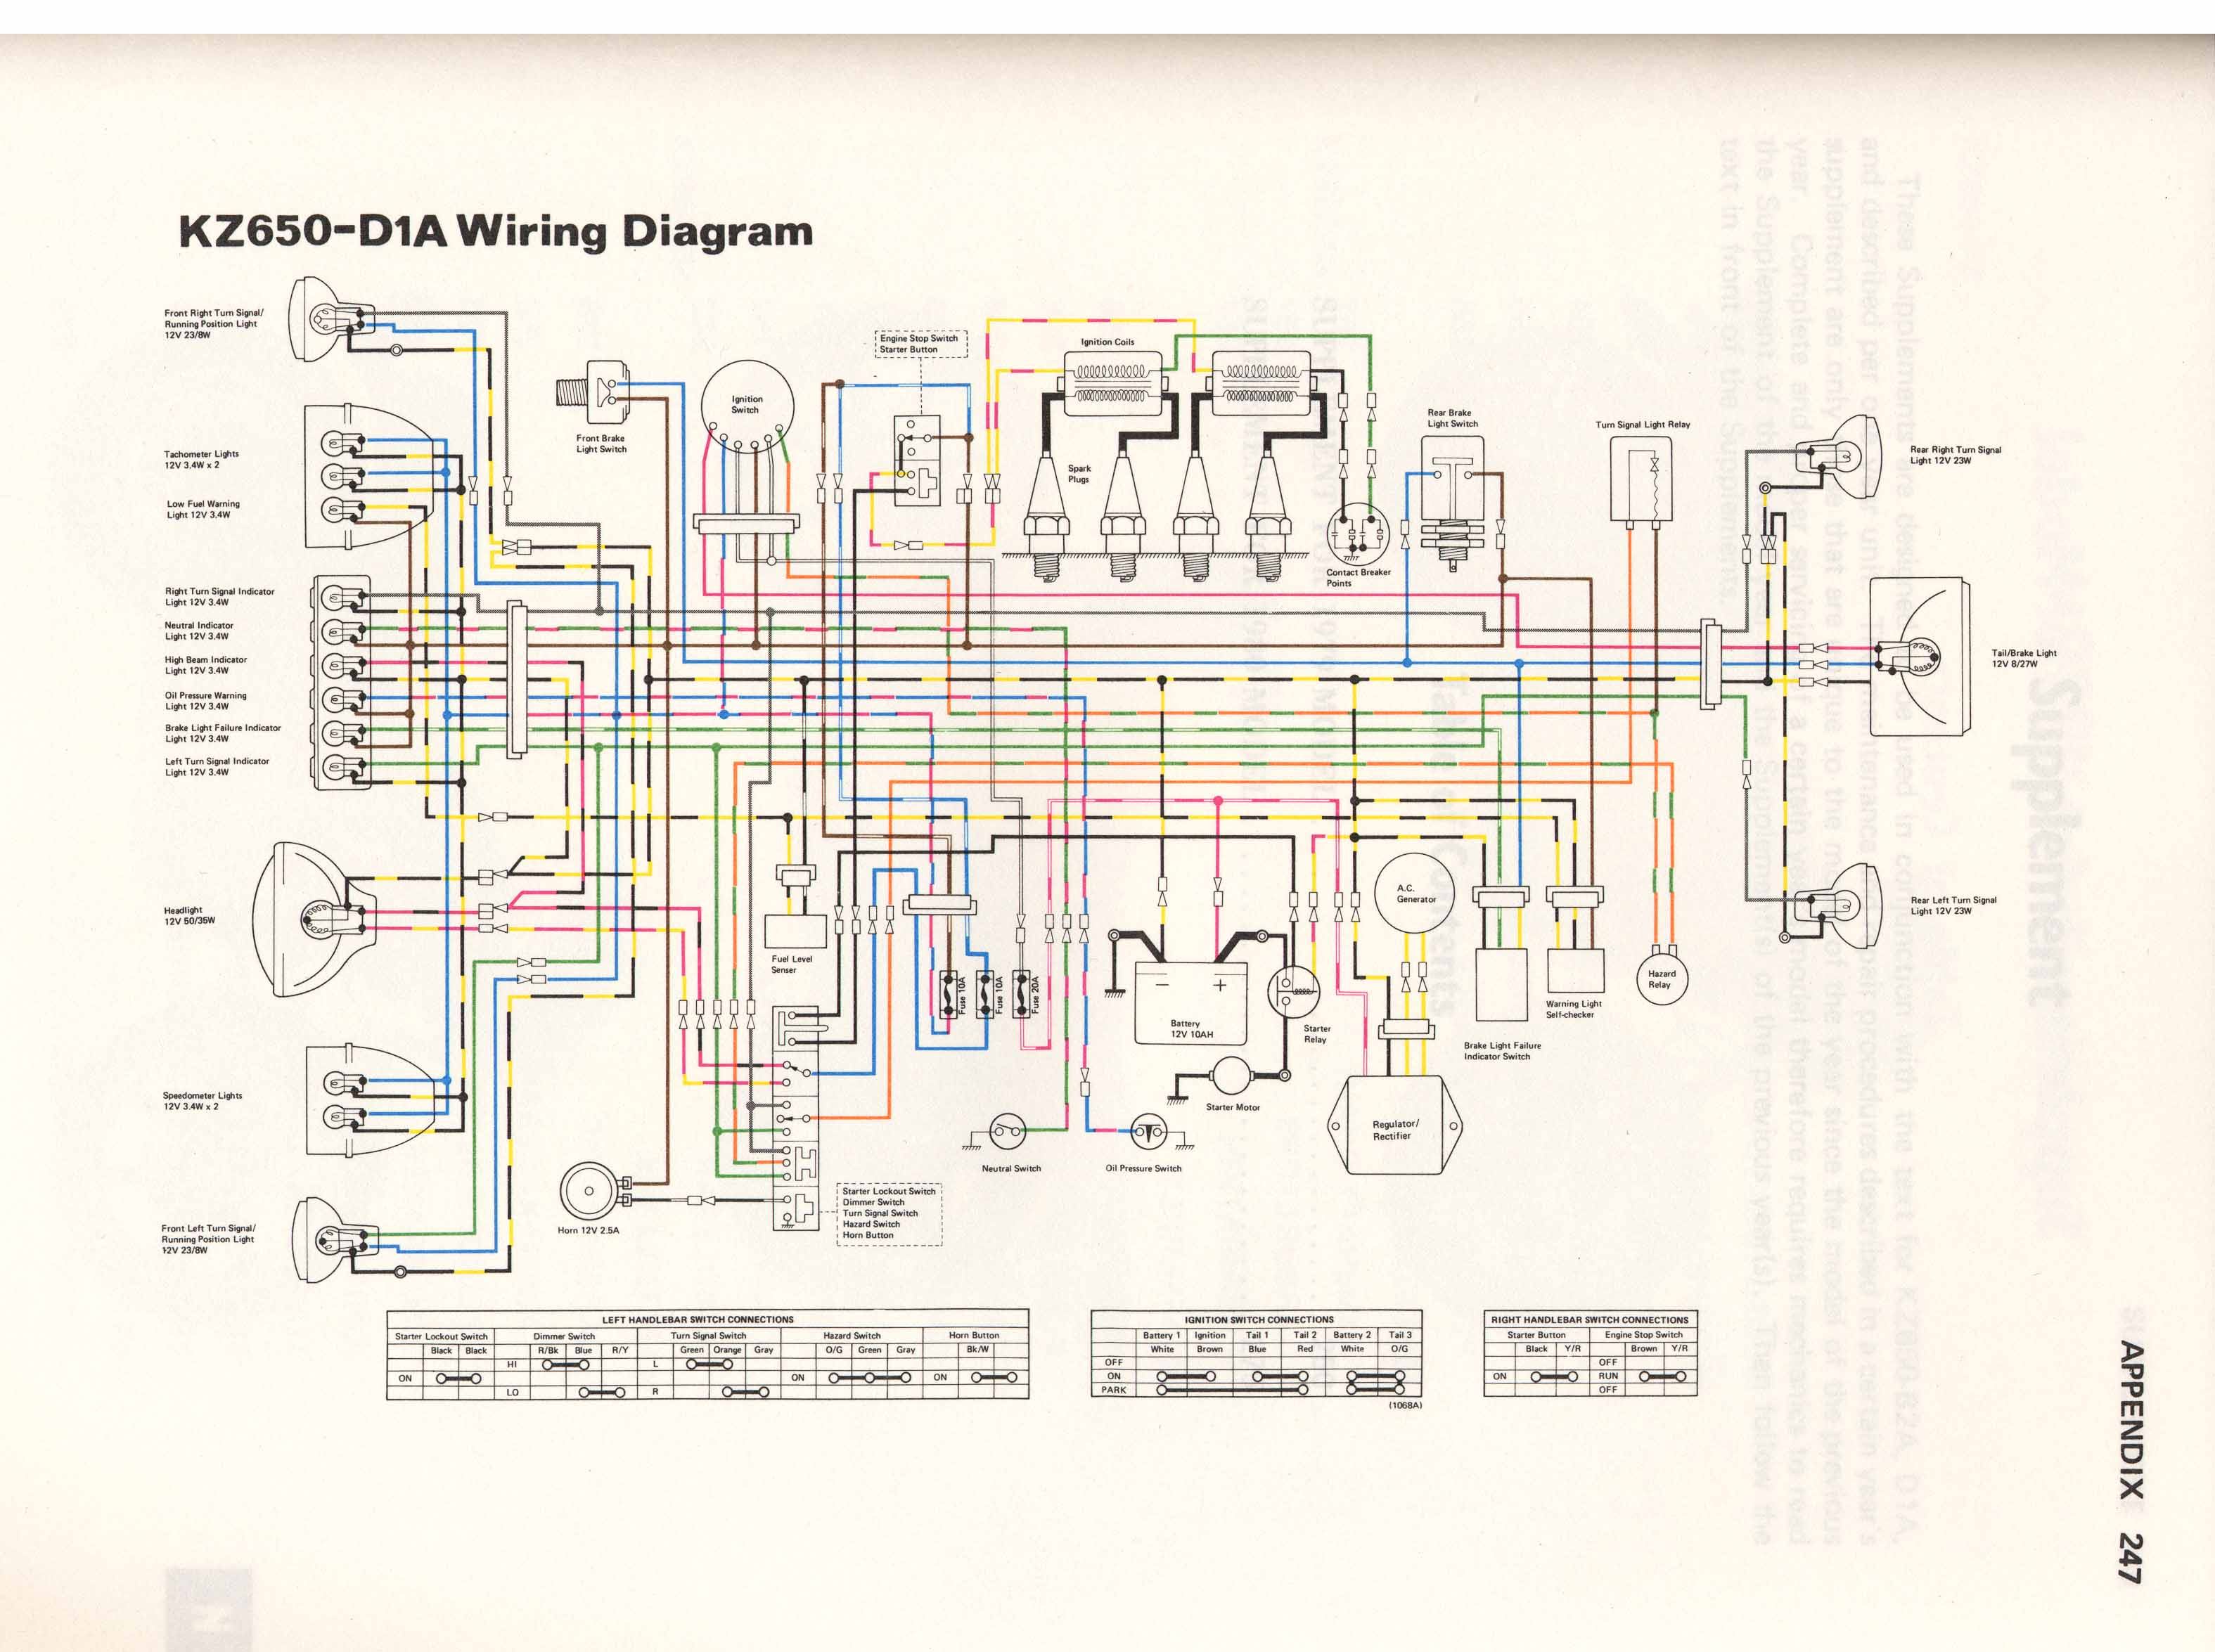 KZ650 D1A kz650 info wiring diagrams kawasaki zx9r e1 wiring diagram at alyssarenee.co